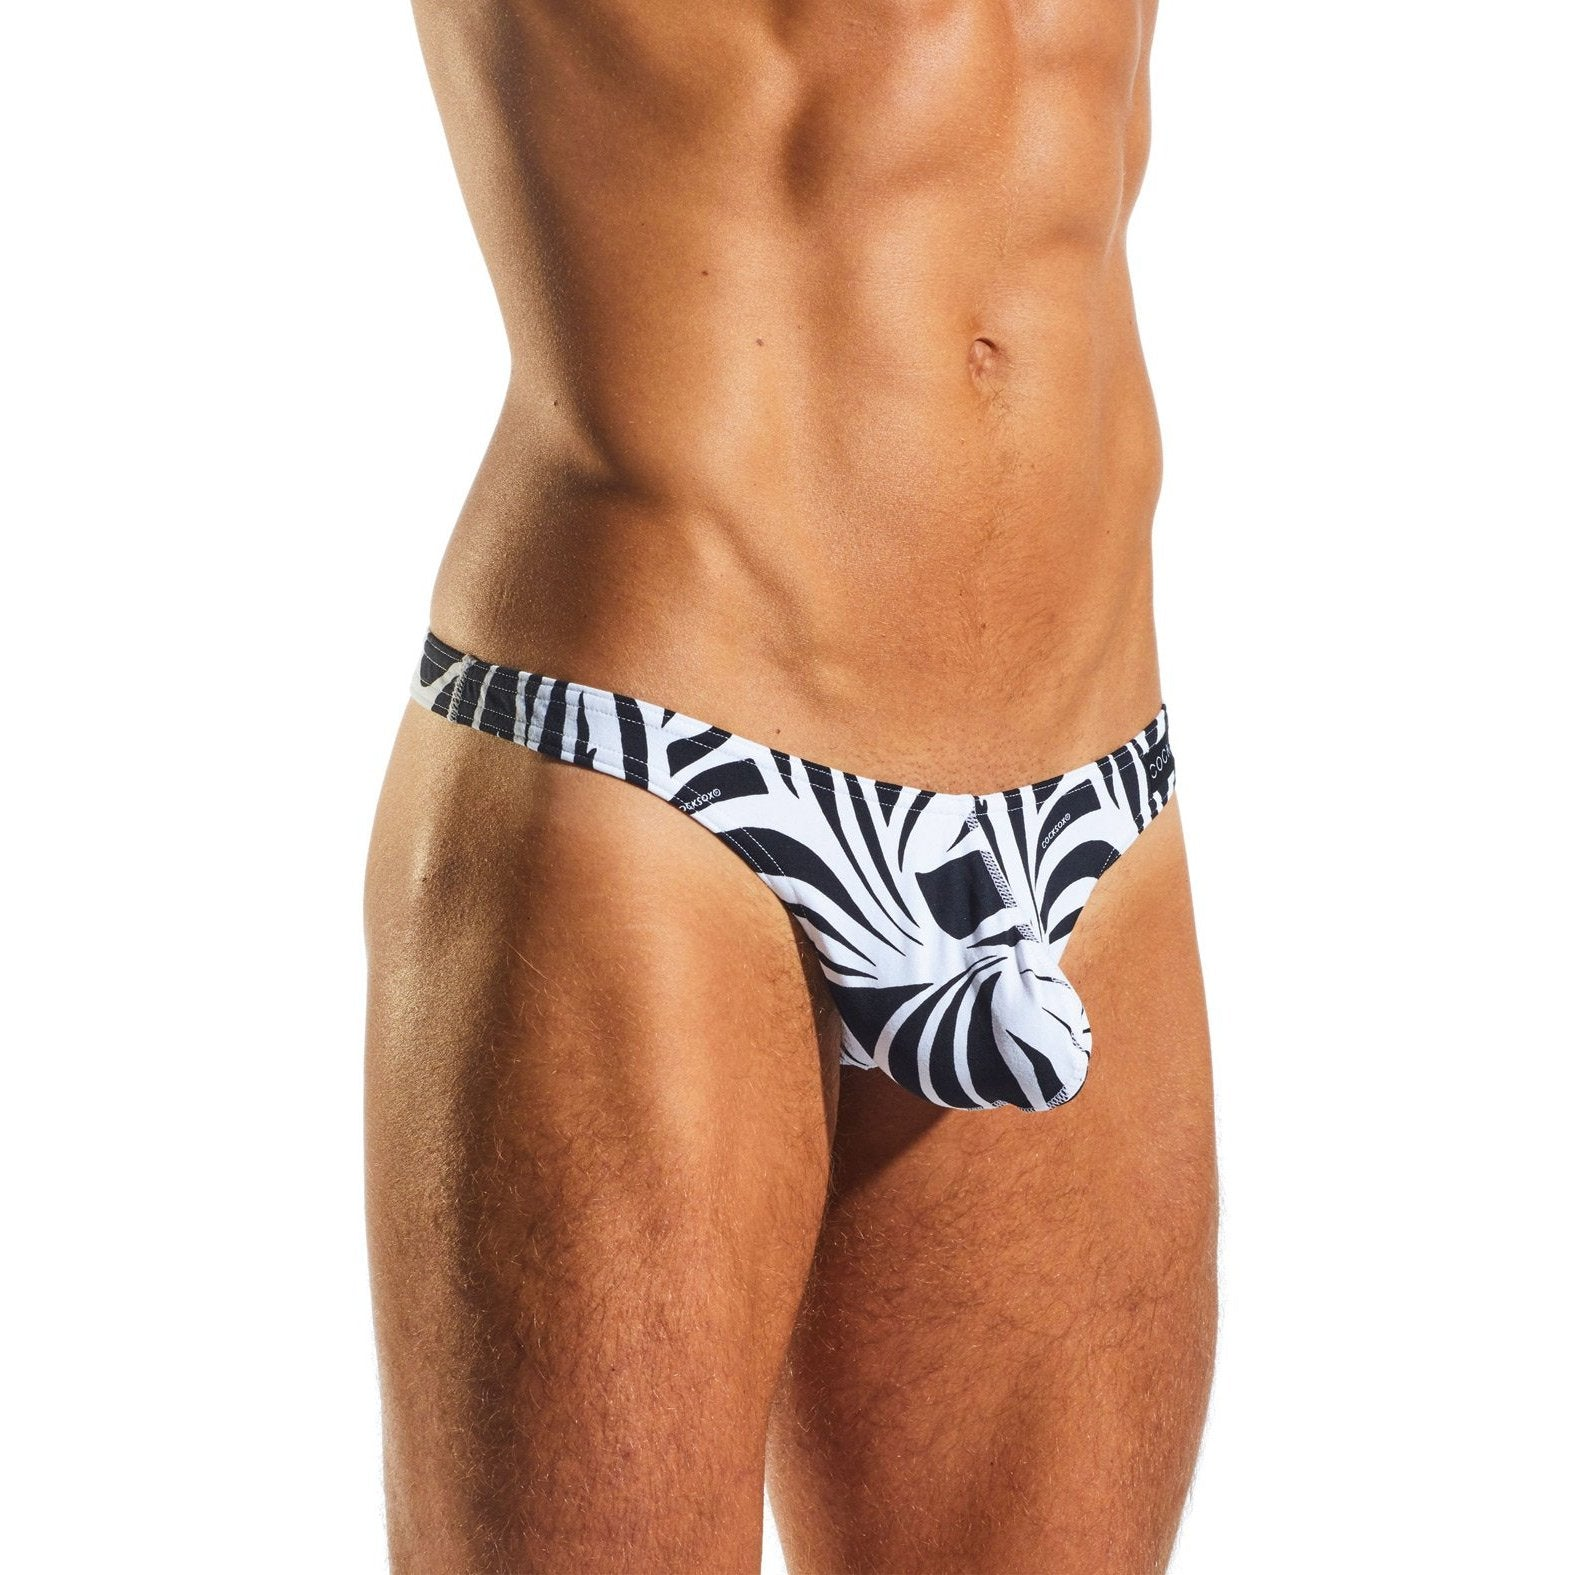 Cocksox Enhancing Pouch Thong - Animal Print - Gay Men's Sex Toys - Adam's Toy Box